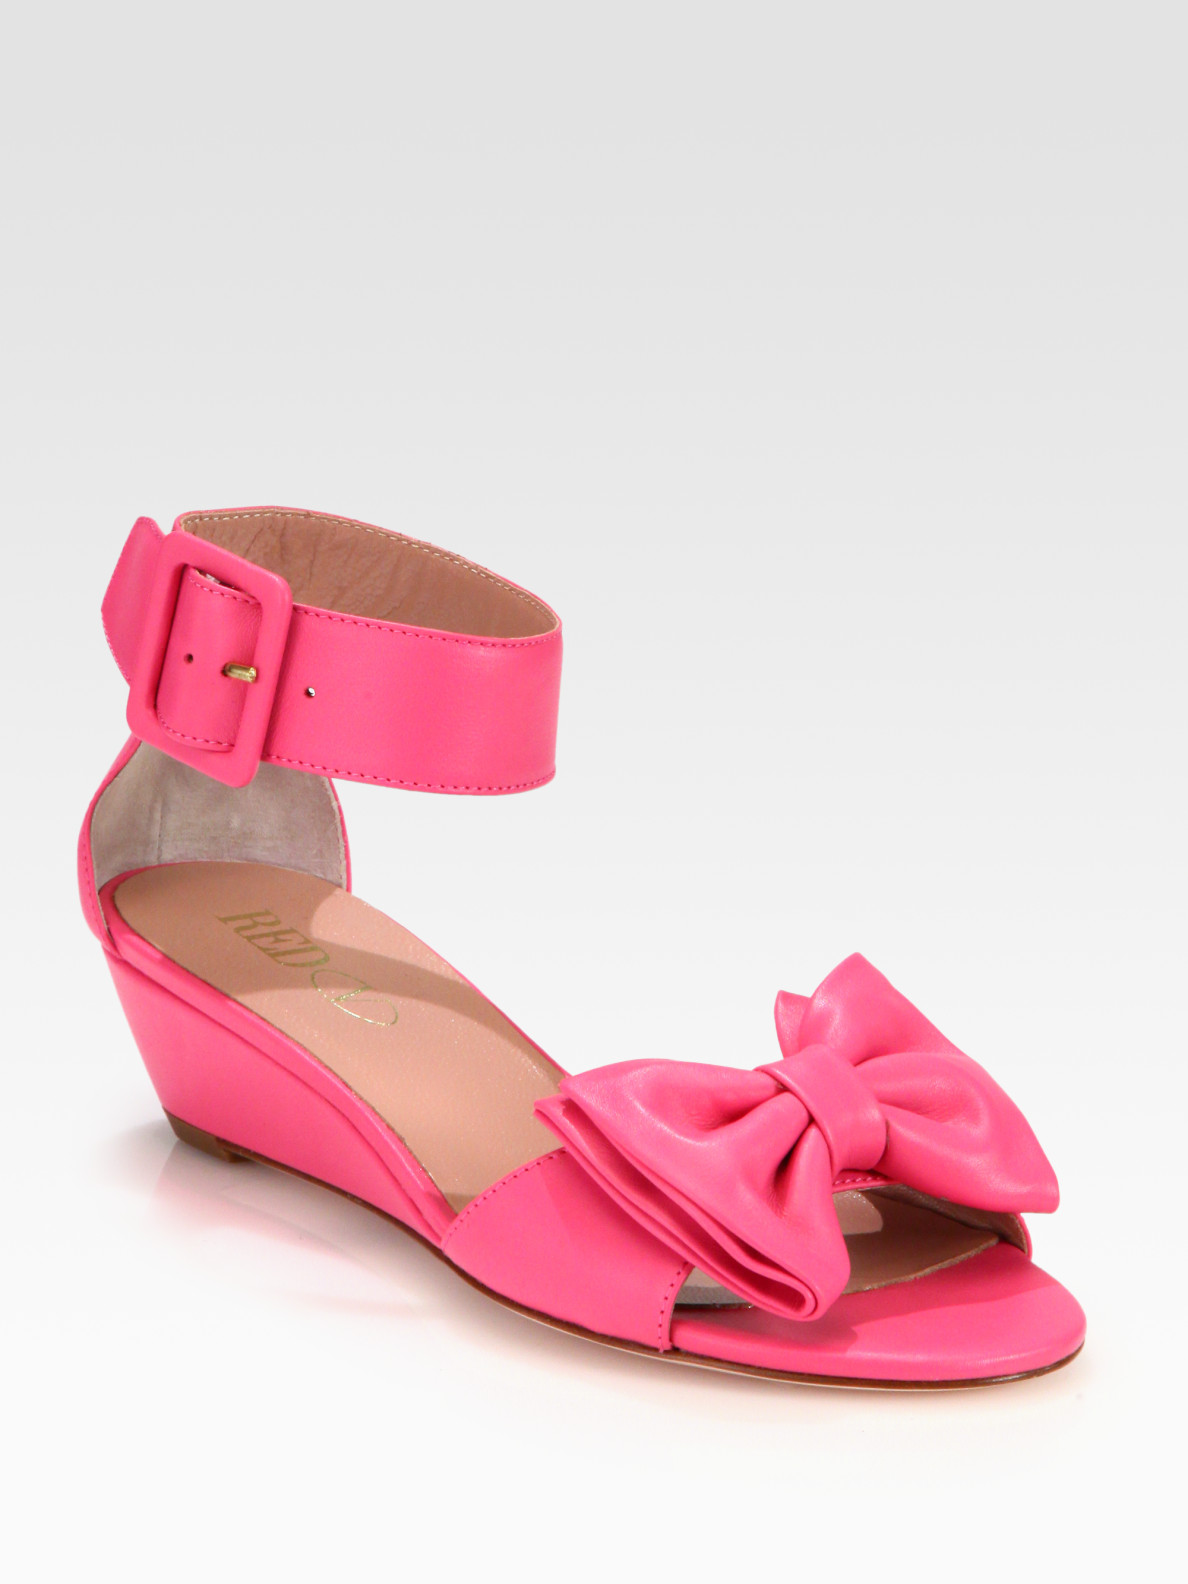 Red Valentino Leather Bow Sandals In Pink Lyst